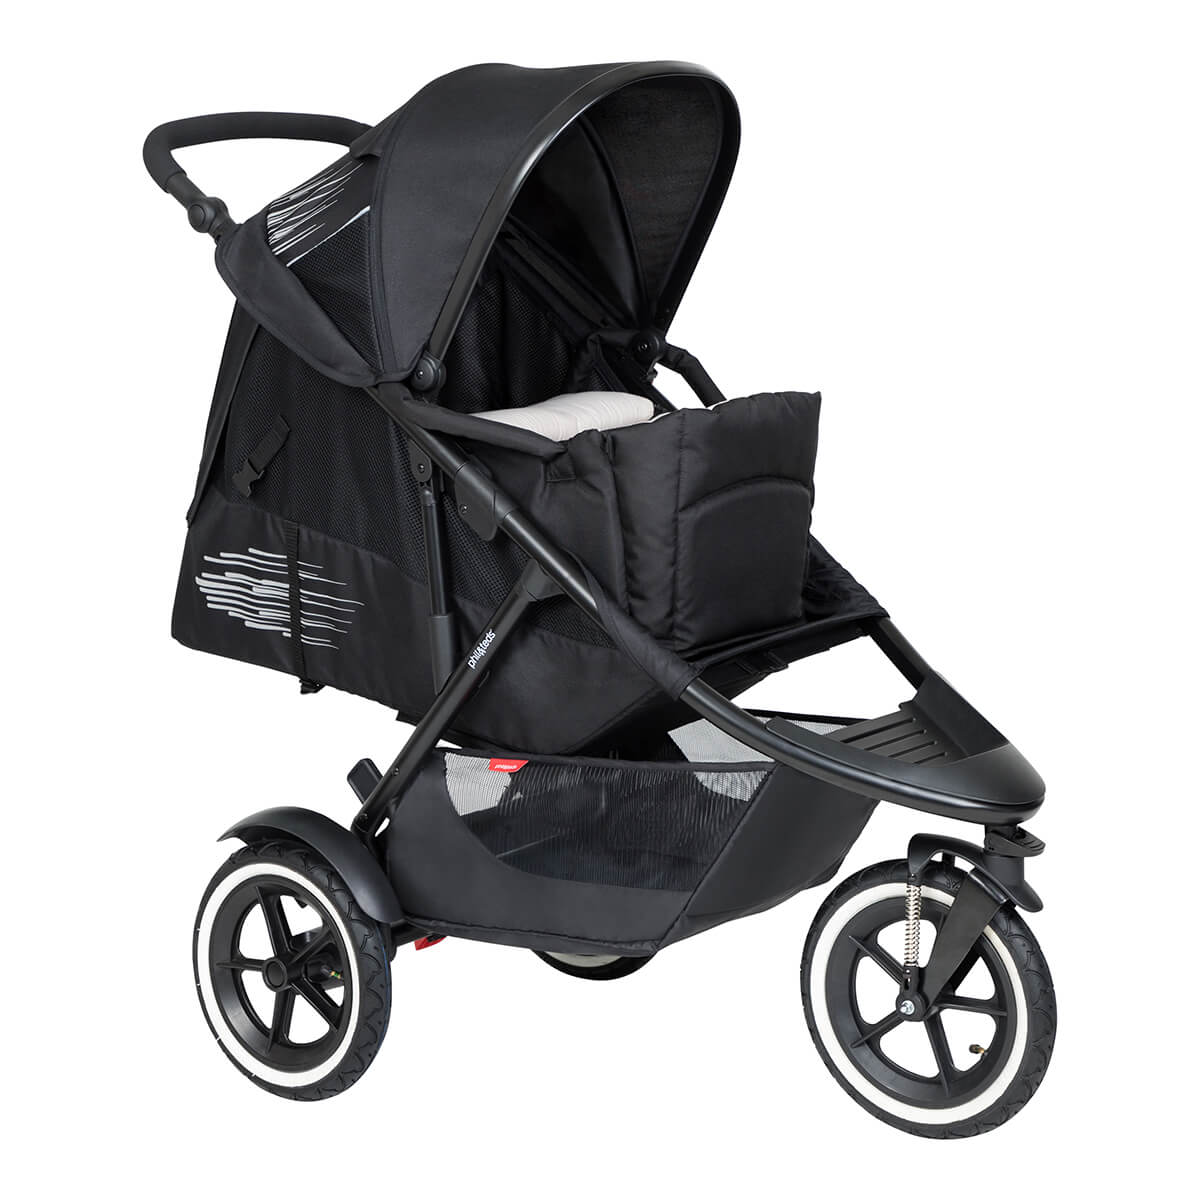 https://cdn.accentuate.io/4509528227928/19272668119128/philteds-sport-buggy-with-cocoon-full-recline-v1626484451643.jpg?1200x1200